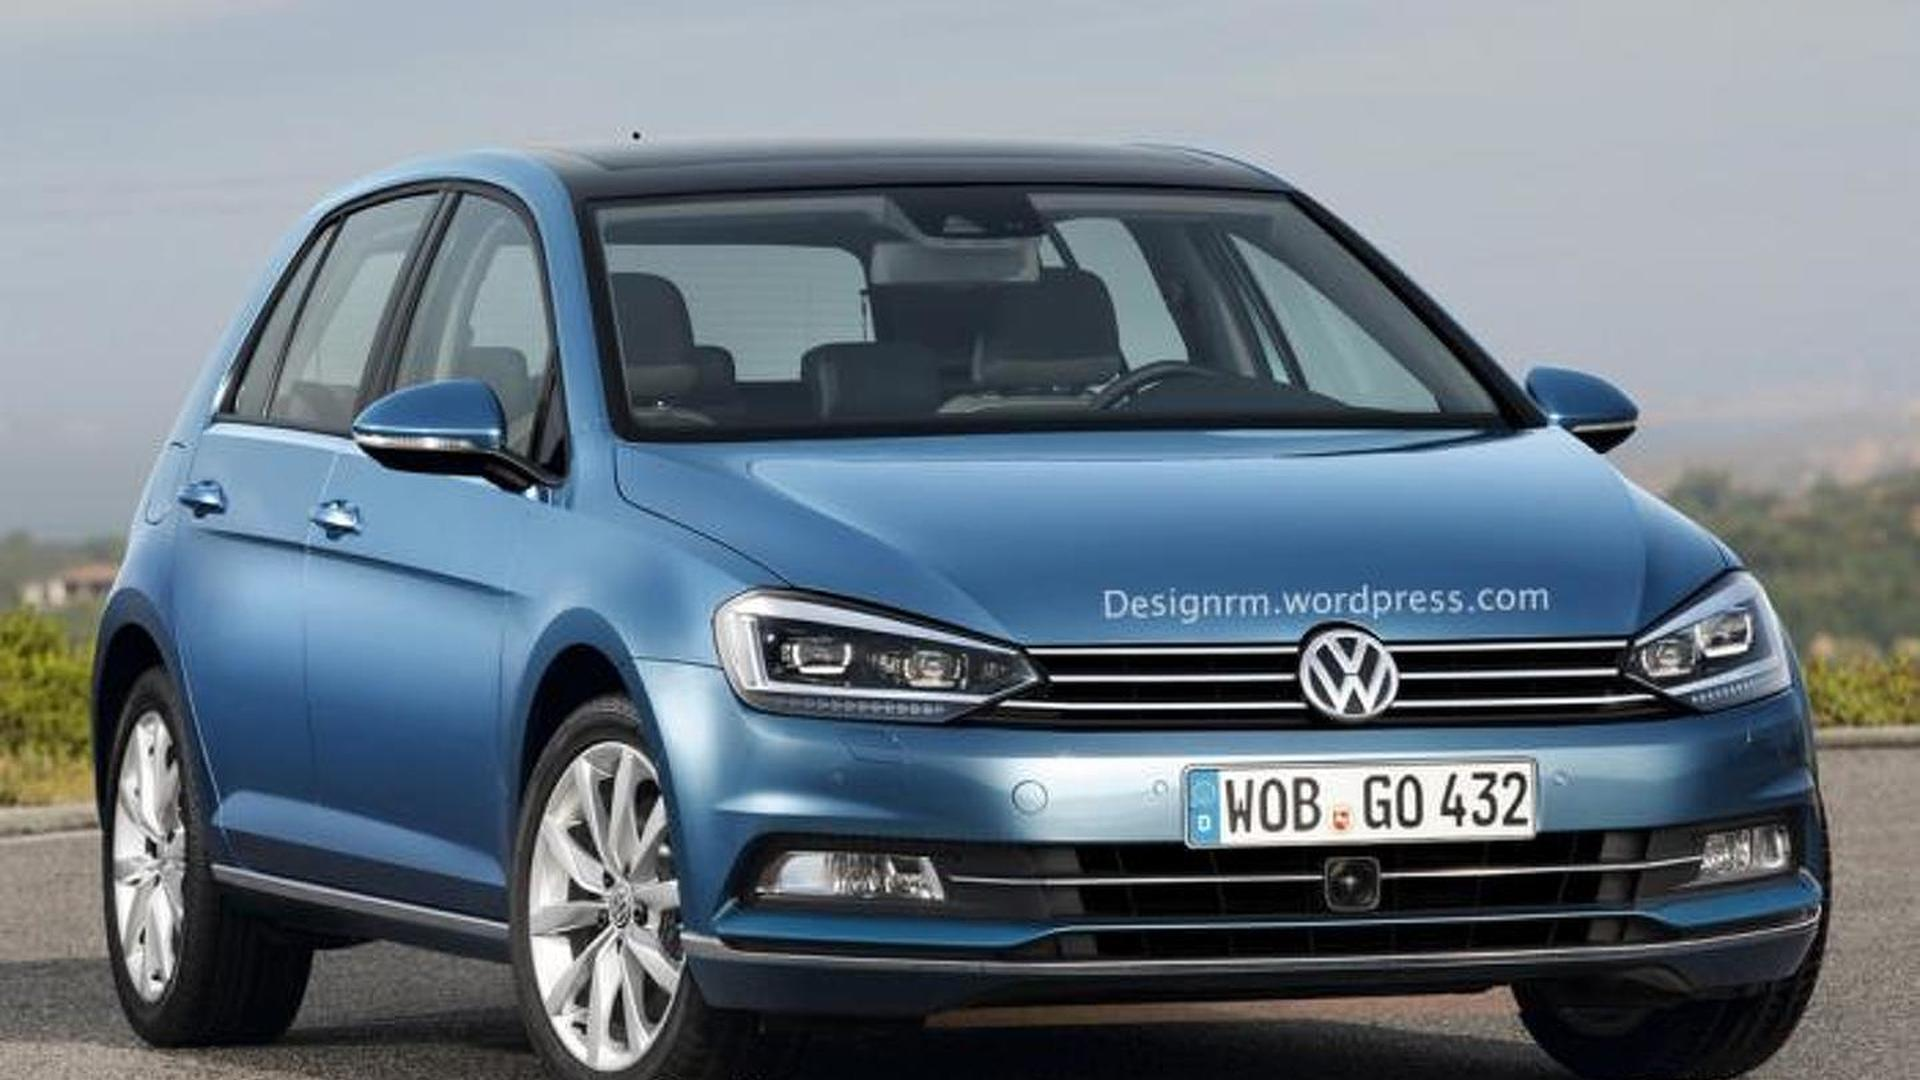 Next Generation Volkswagen Golf Coming Late 2016 With Mild Hybrid Train